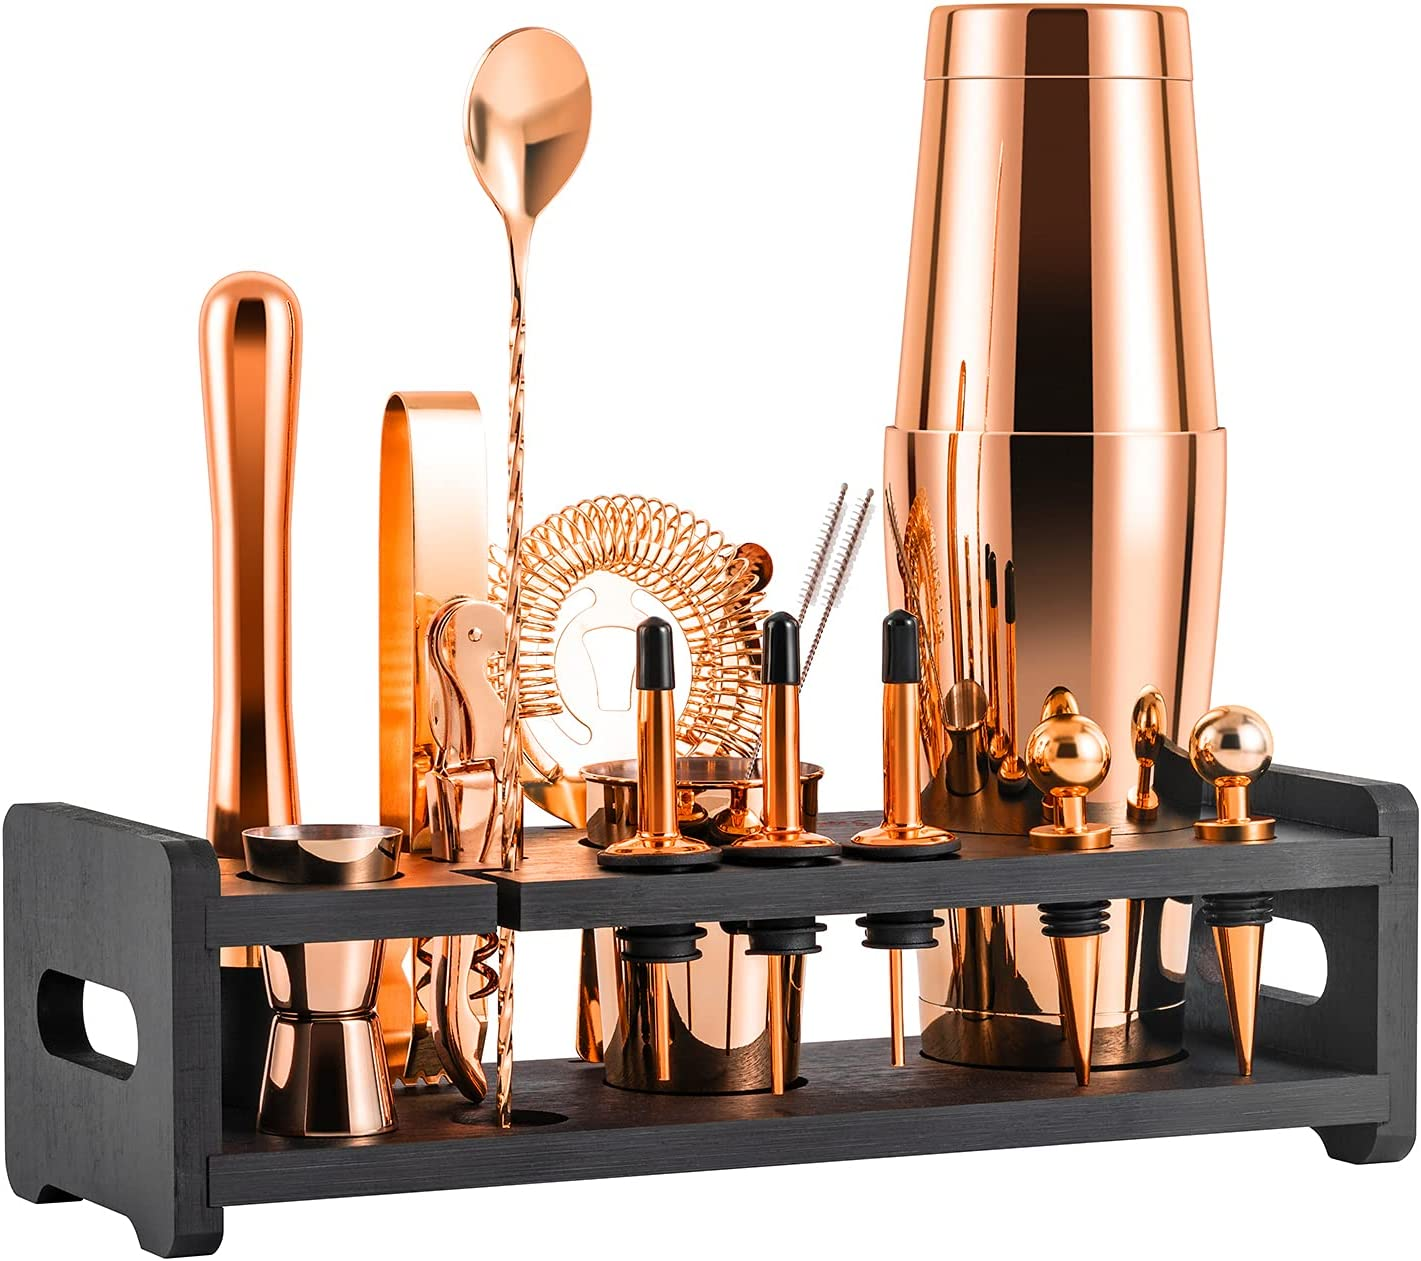 Soing 24-Piece Cocktail Shaker Set,Perfect Home Bartender Kit for Drink Mixing,Stainless Steel Bar Tools With Stand,Velvet Carry Bag & Recipes Cards Included (Rose Copper)